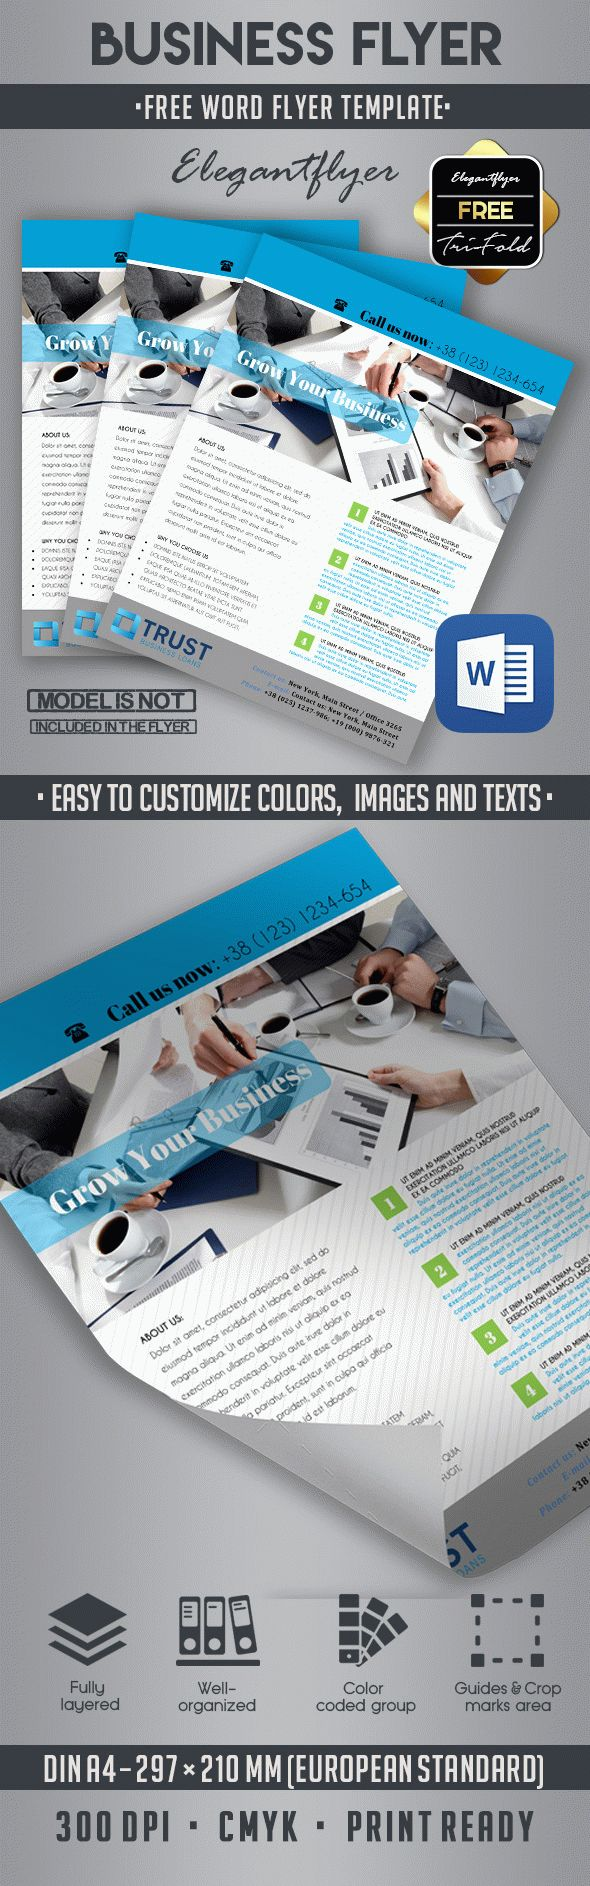 10 best business flyer templates in word by elegantflyer 10 best business flyer templates in word wajeb Images